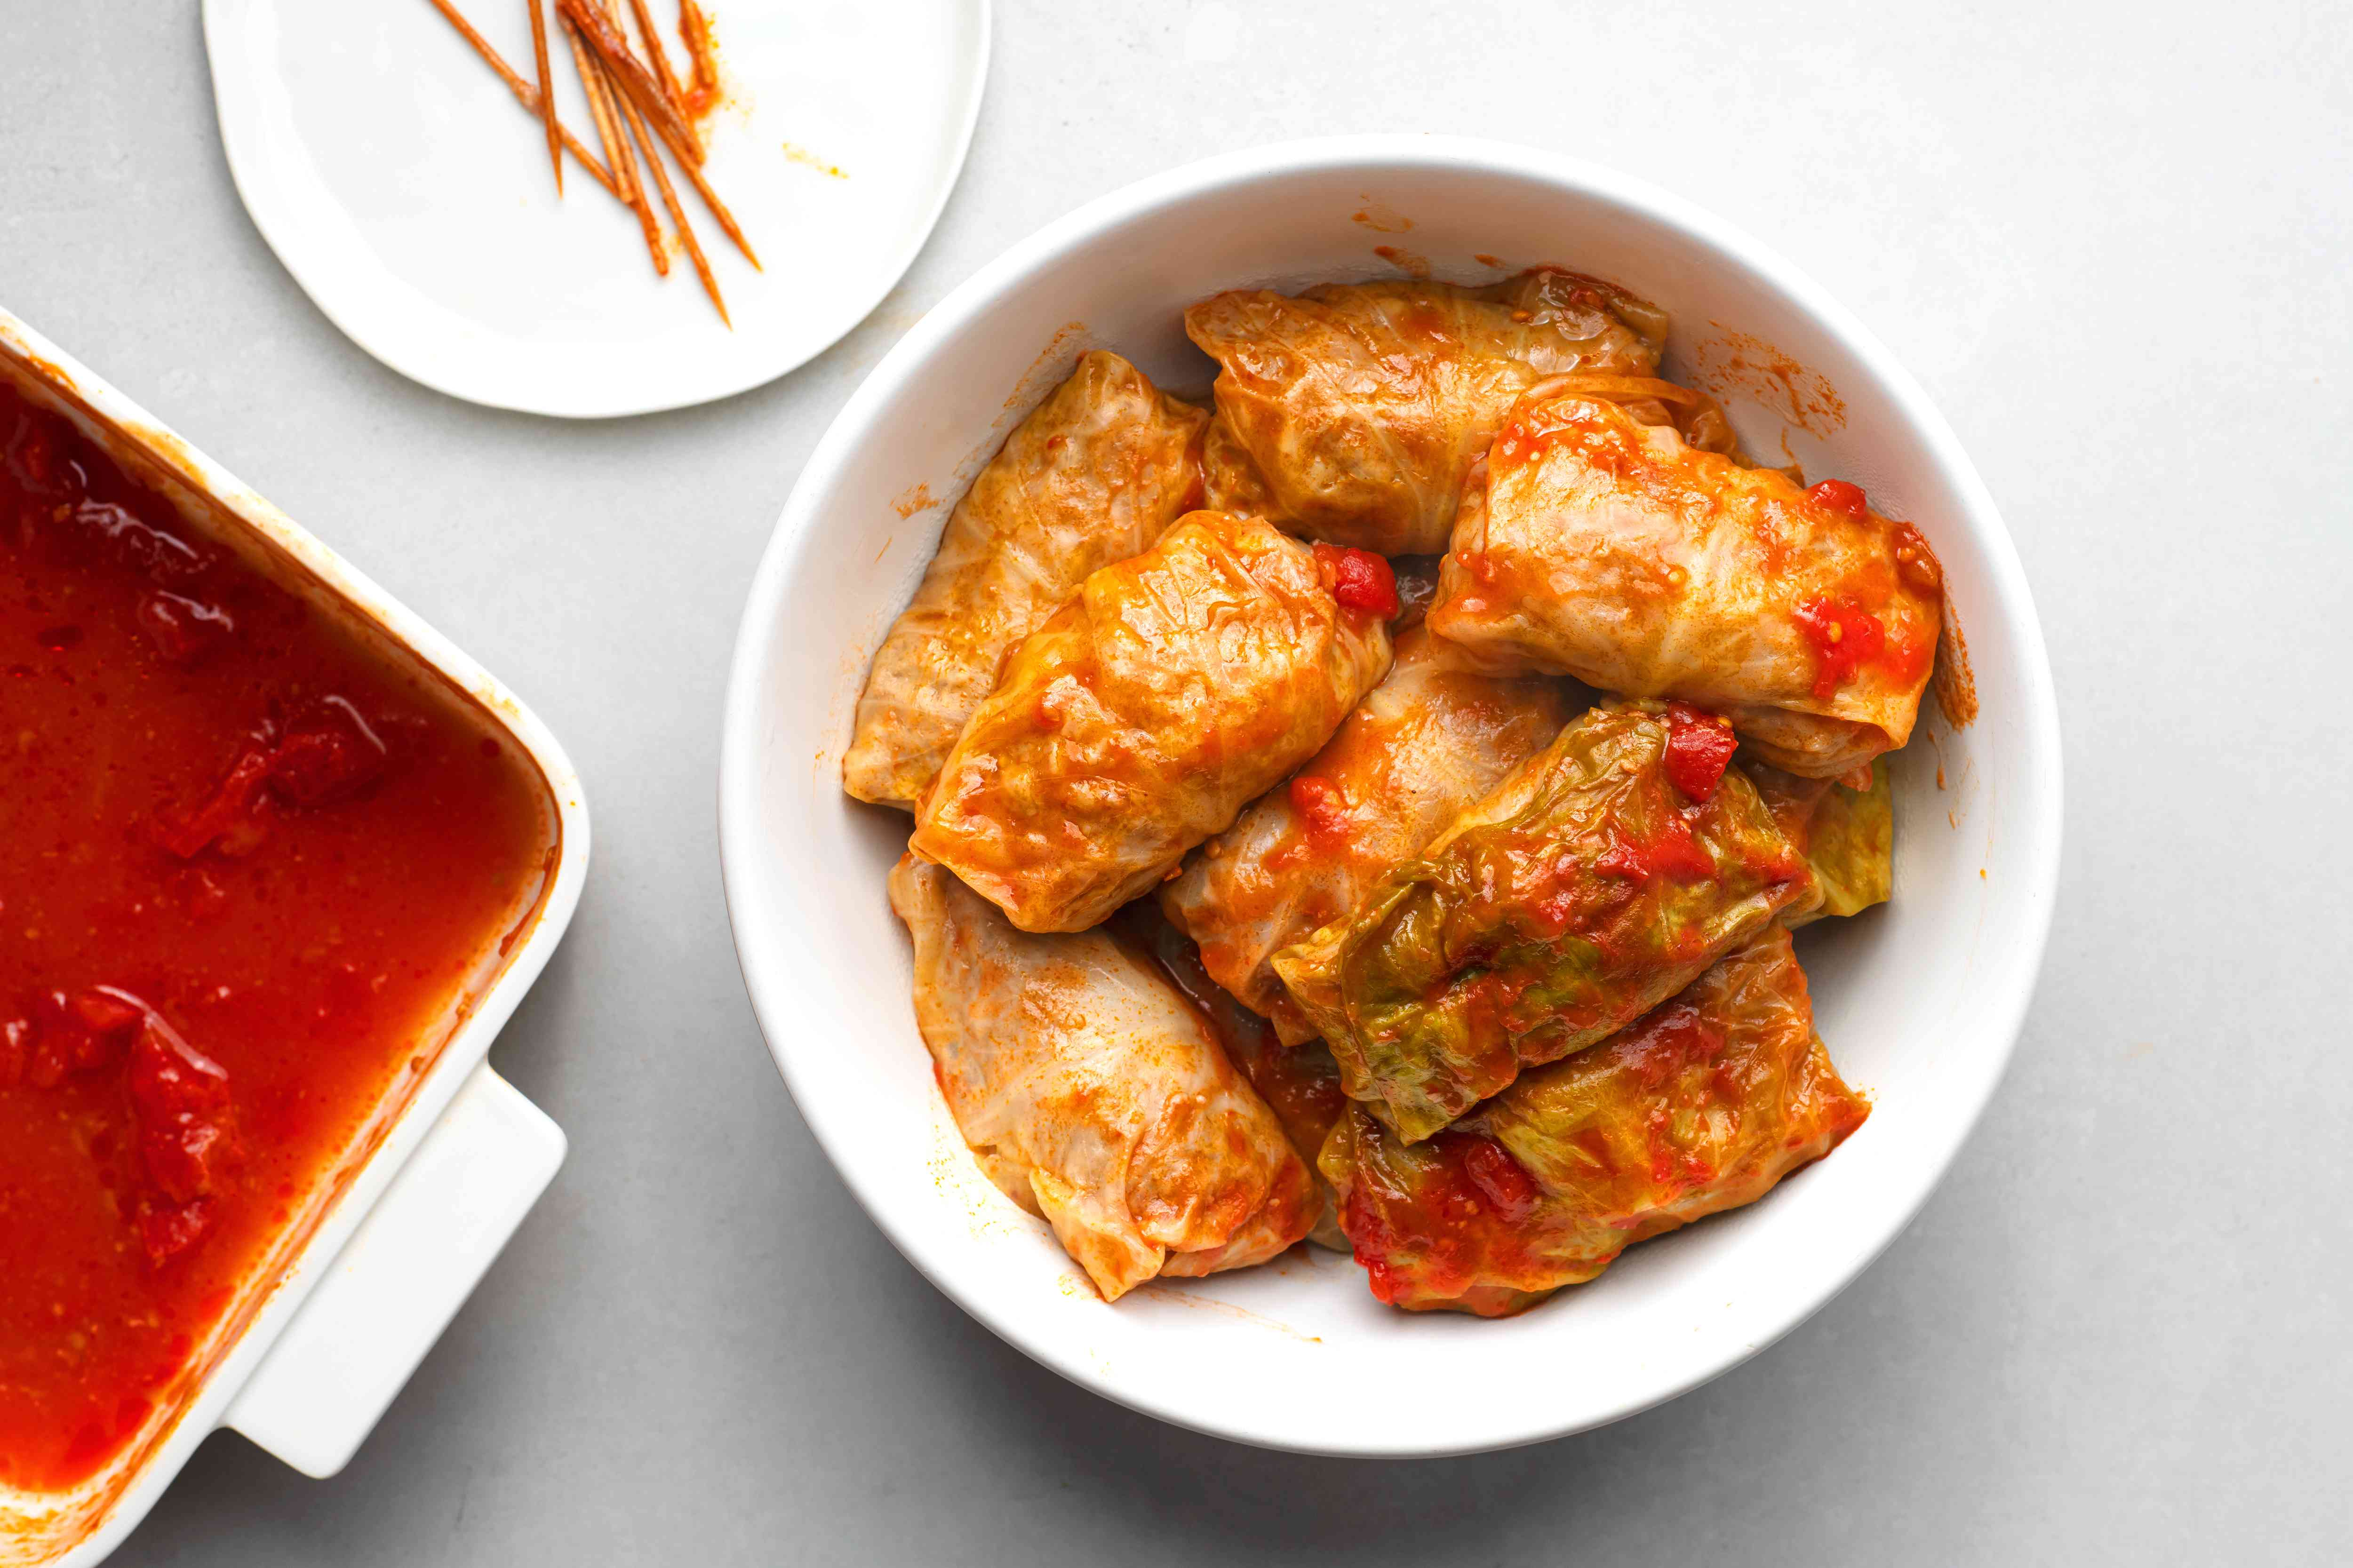 cabbage rolls in a bowl